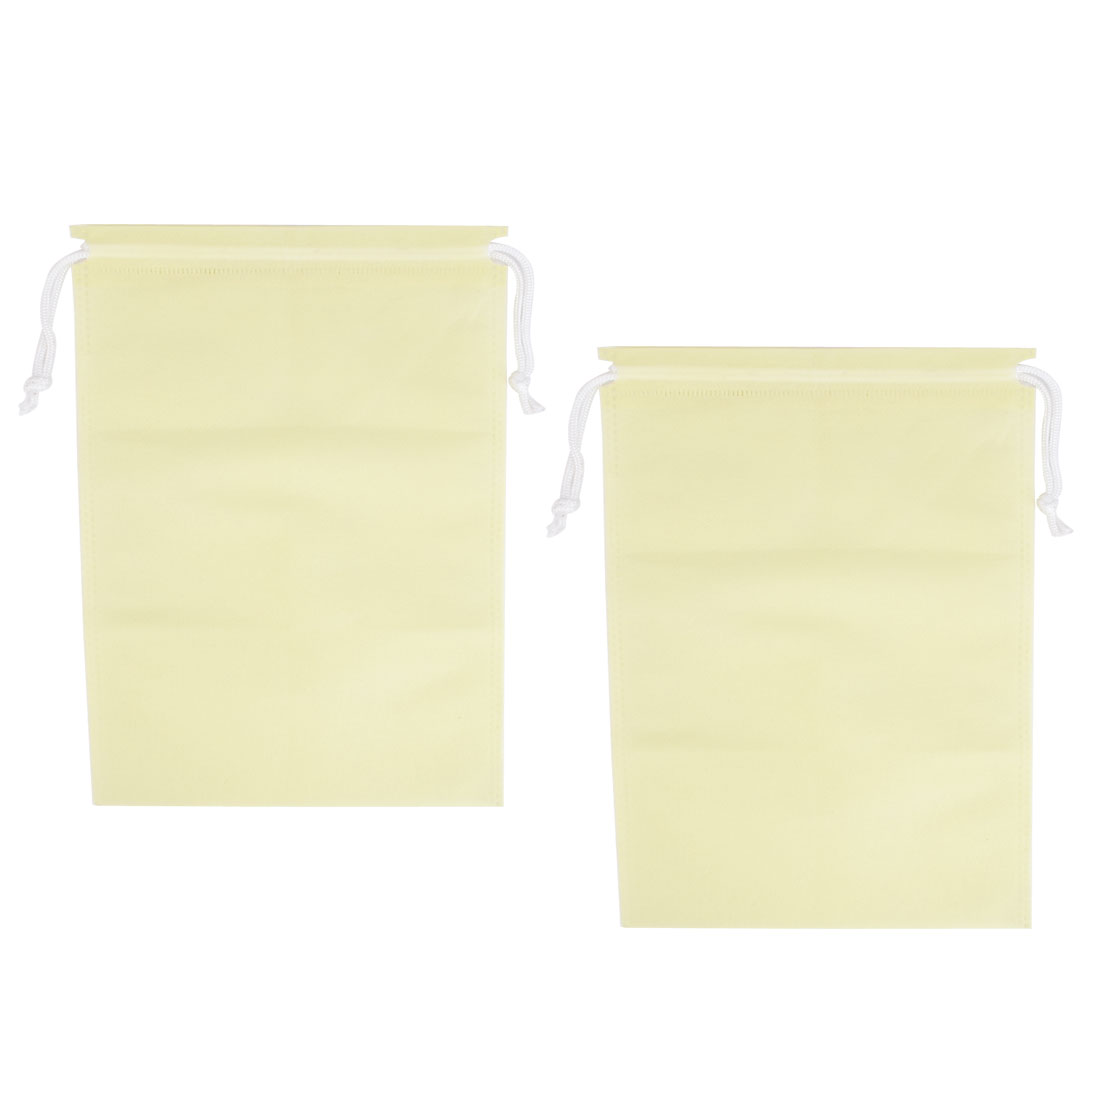 Household Clothes Shoe Dust Cover Storage Travel Drawstring Bags Beige 2pcs